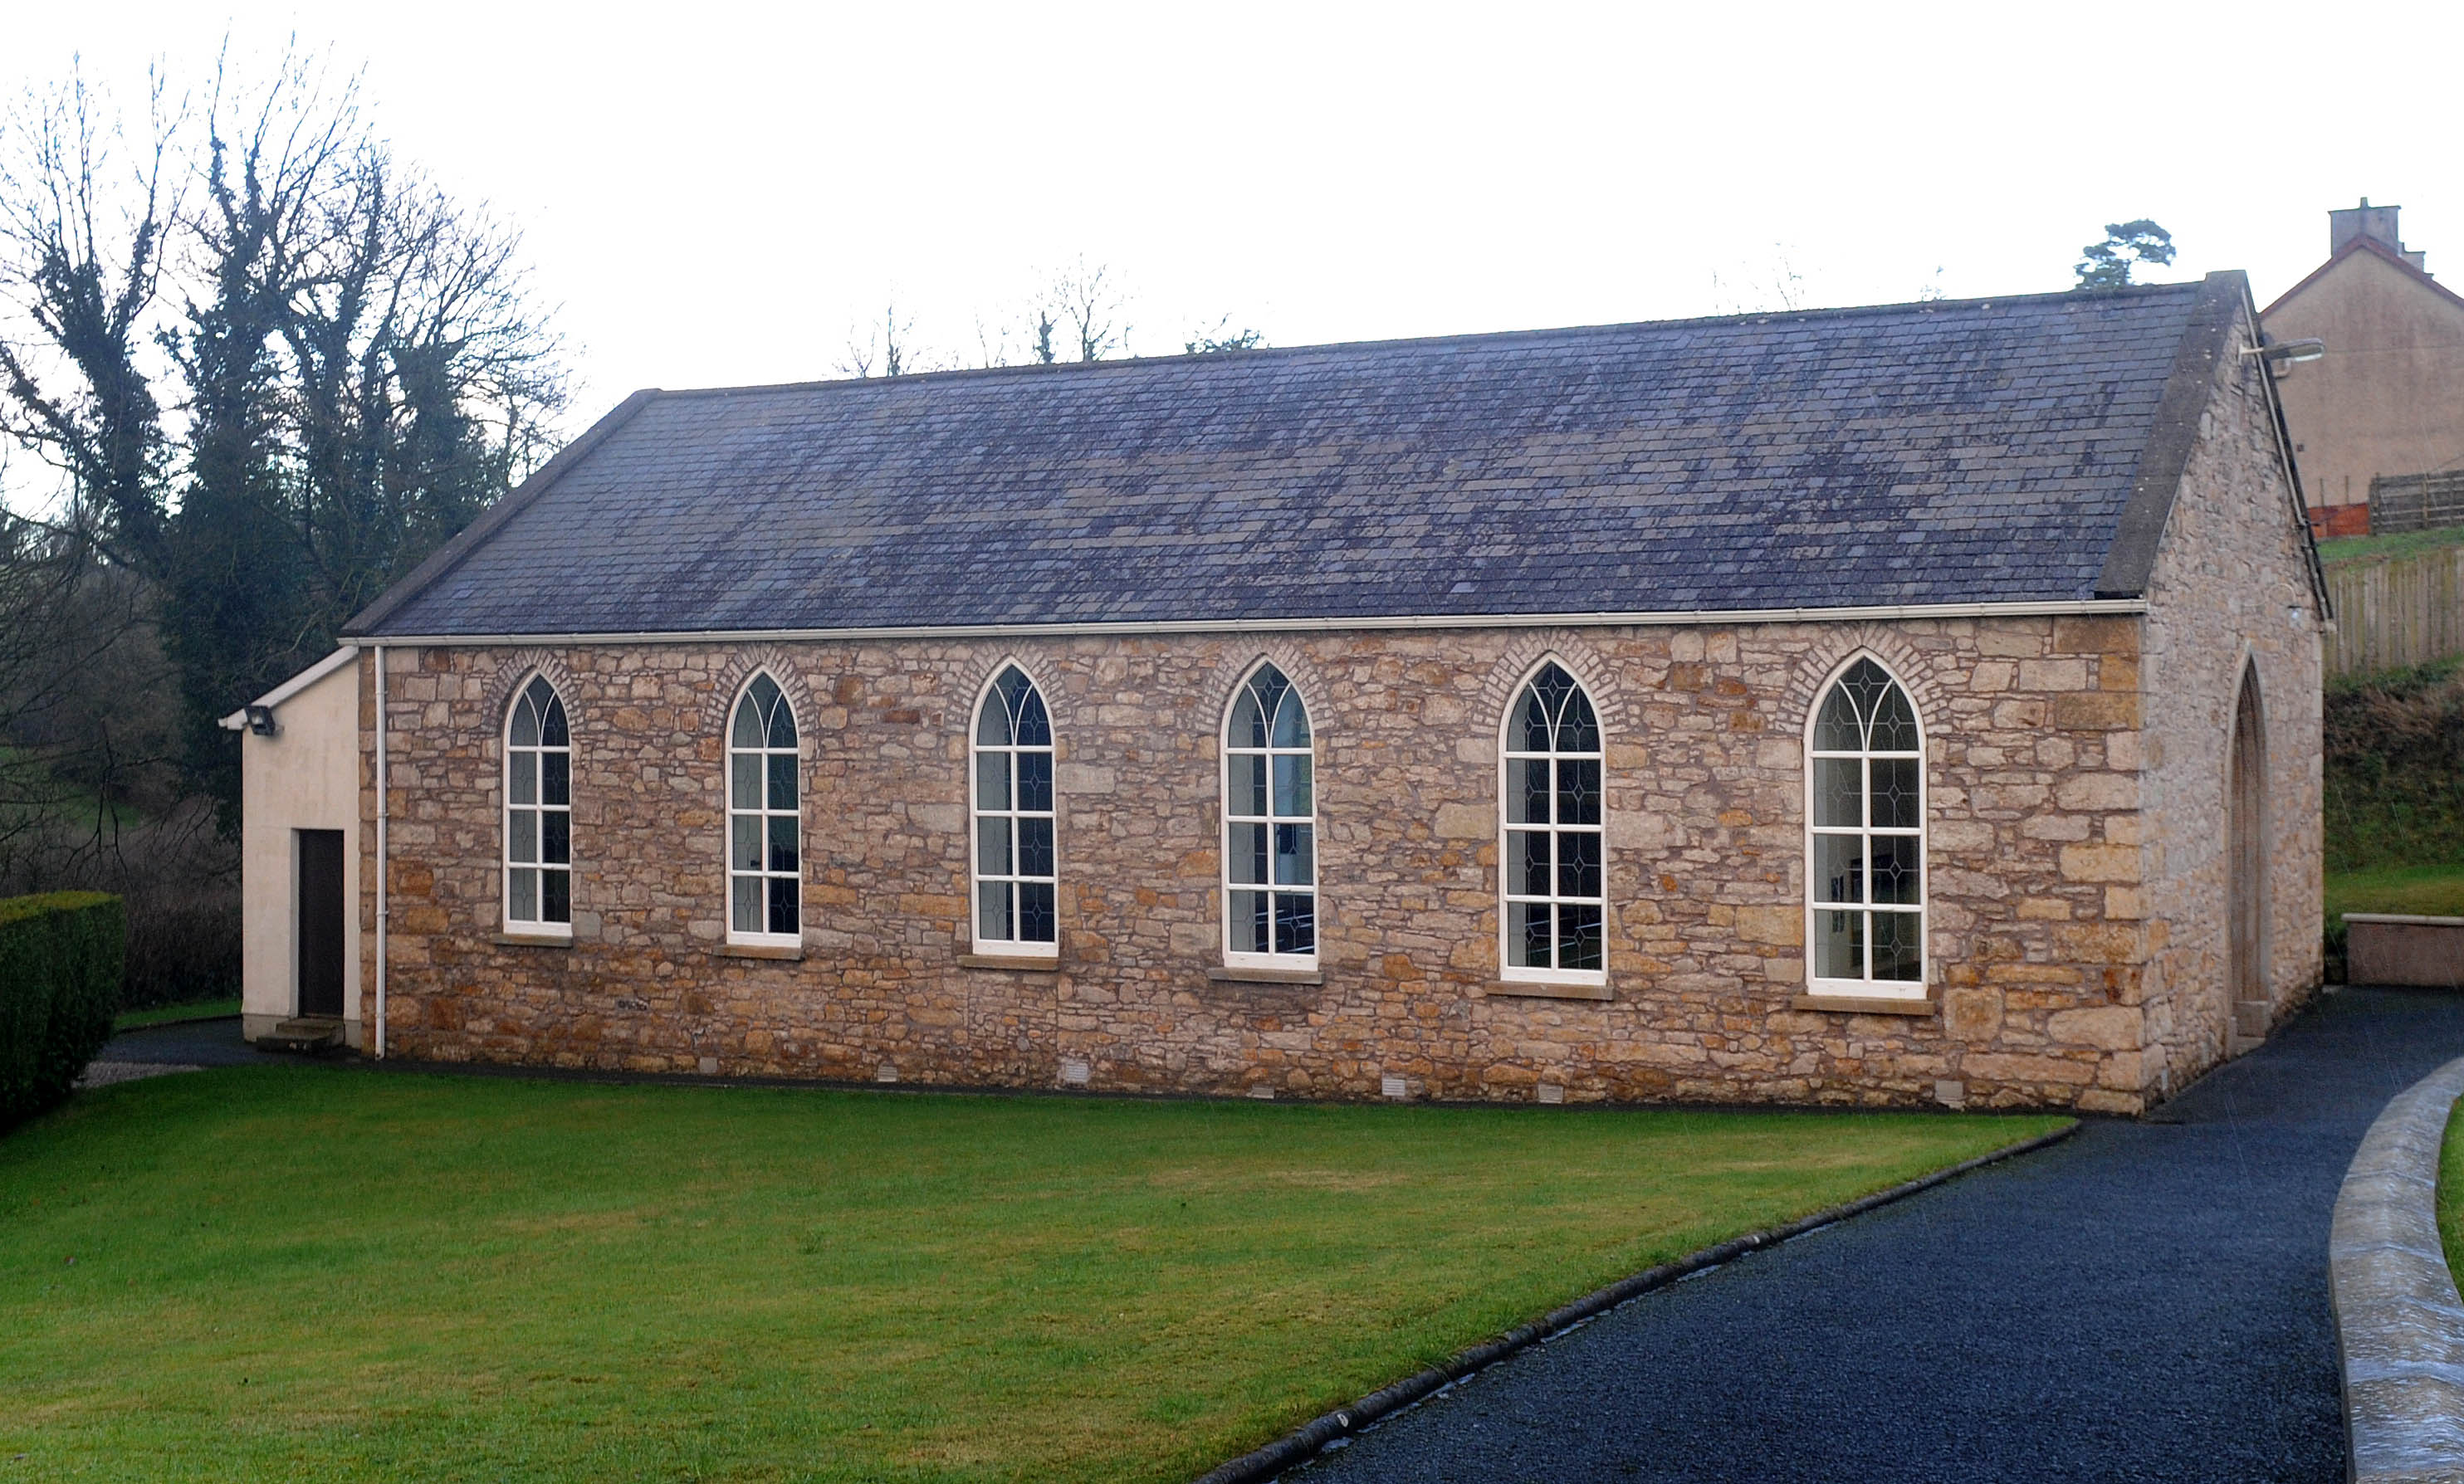 LowerClonaneesePresbyterianChurch